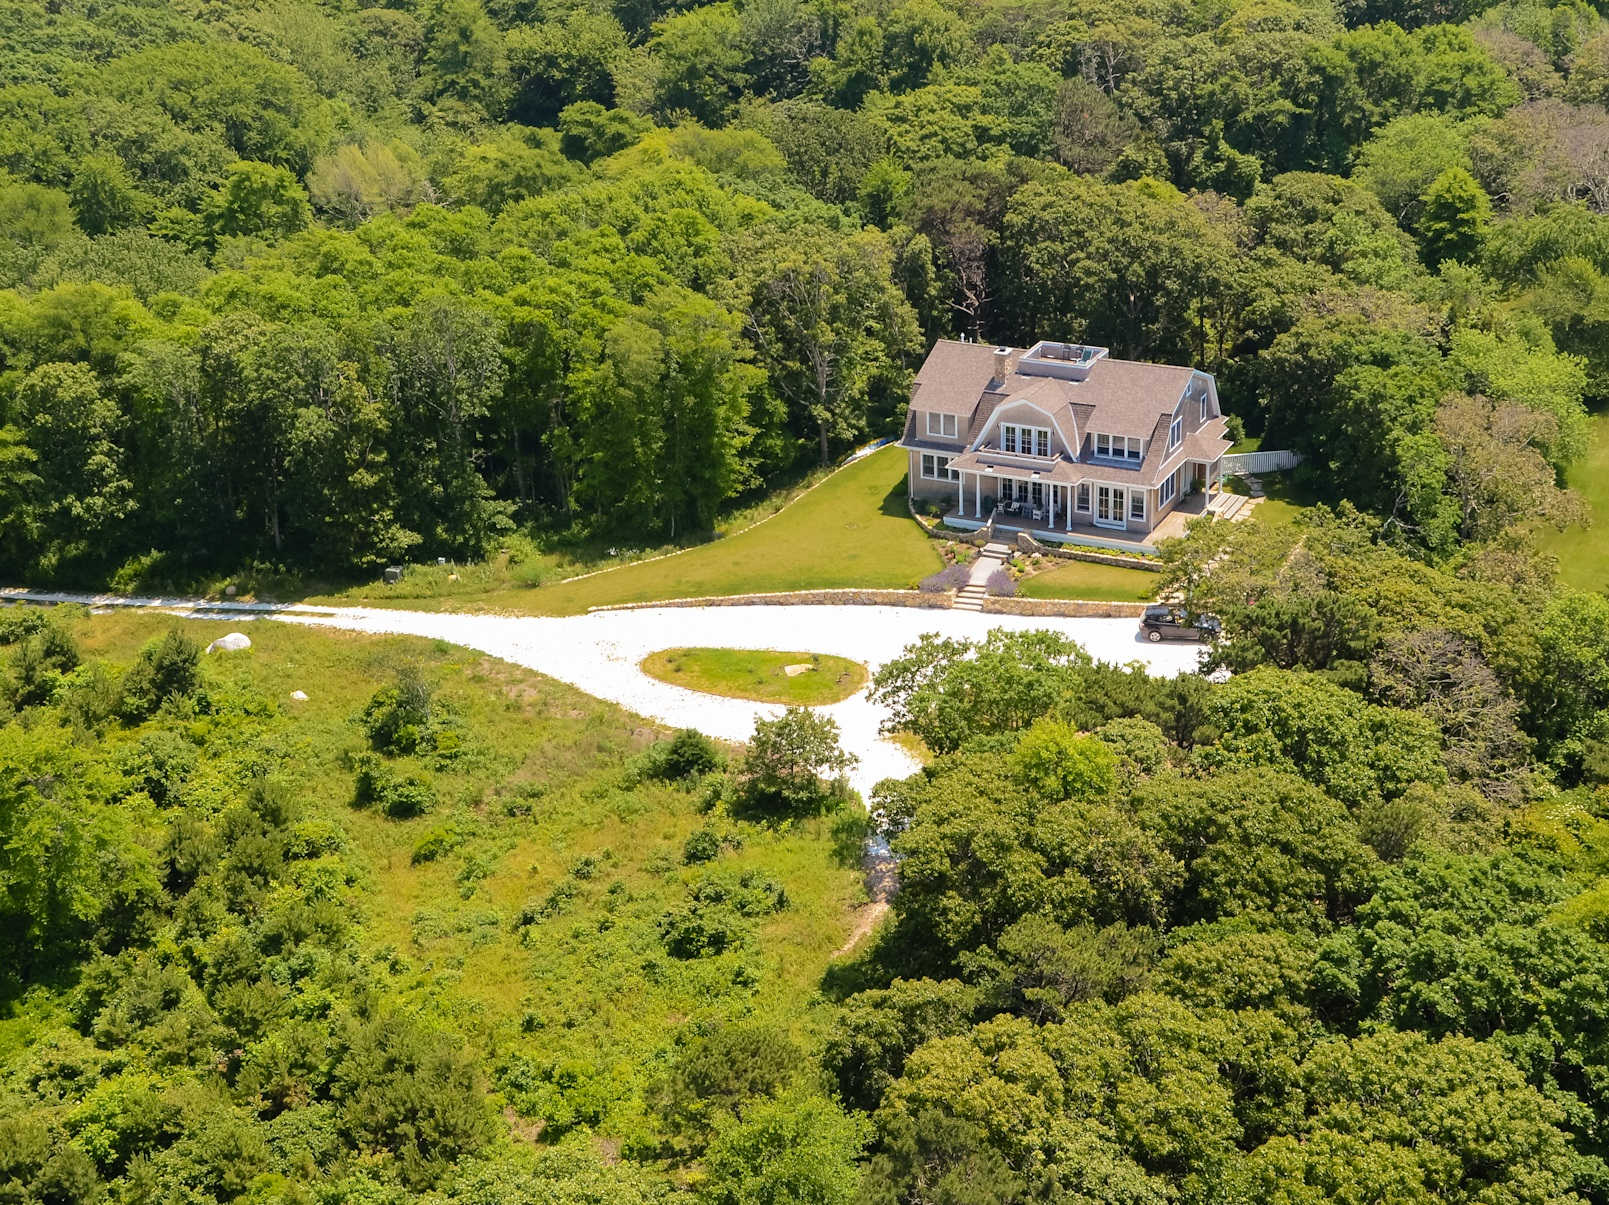 Single Family Home for Sale at 8.6 Acre Estate with Private Association Beaches 94 Norton Farm Road West Tisbury, Massachusetts 02575 United States